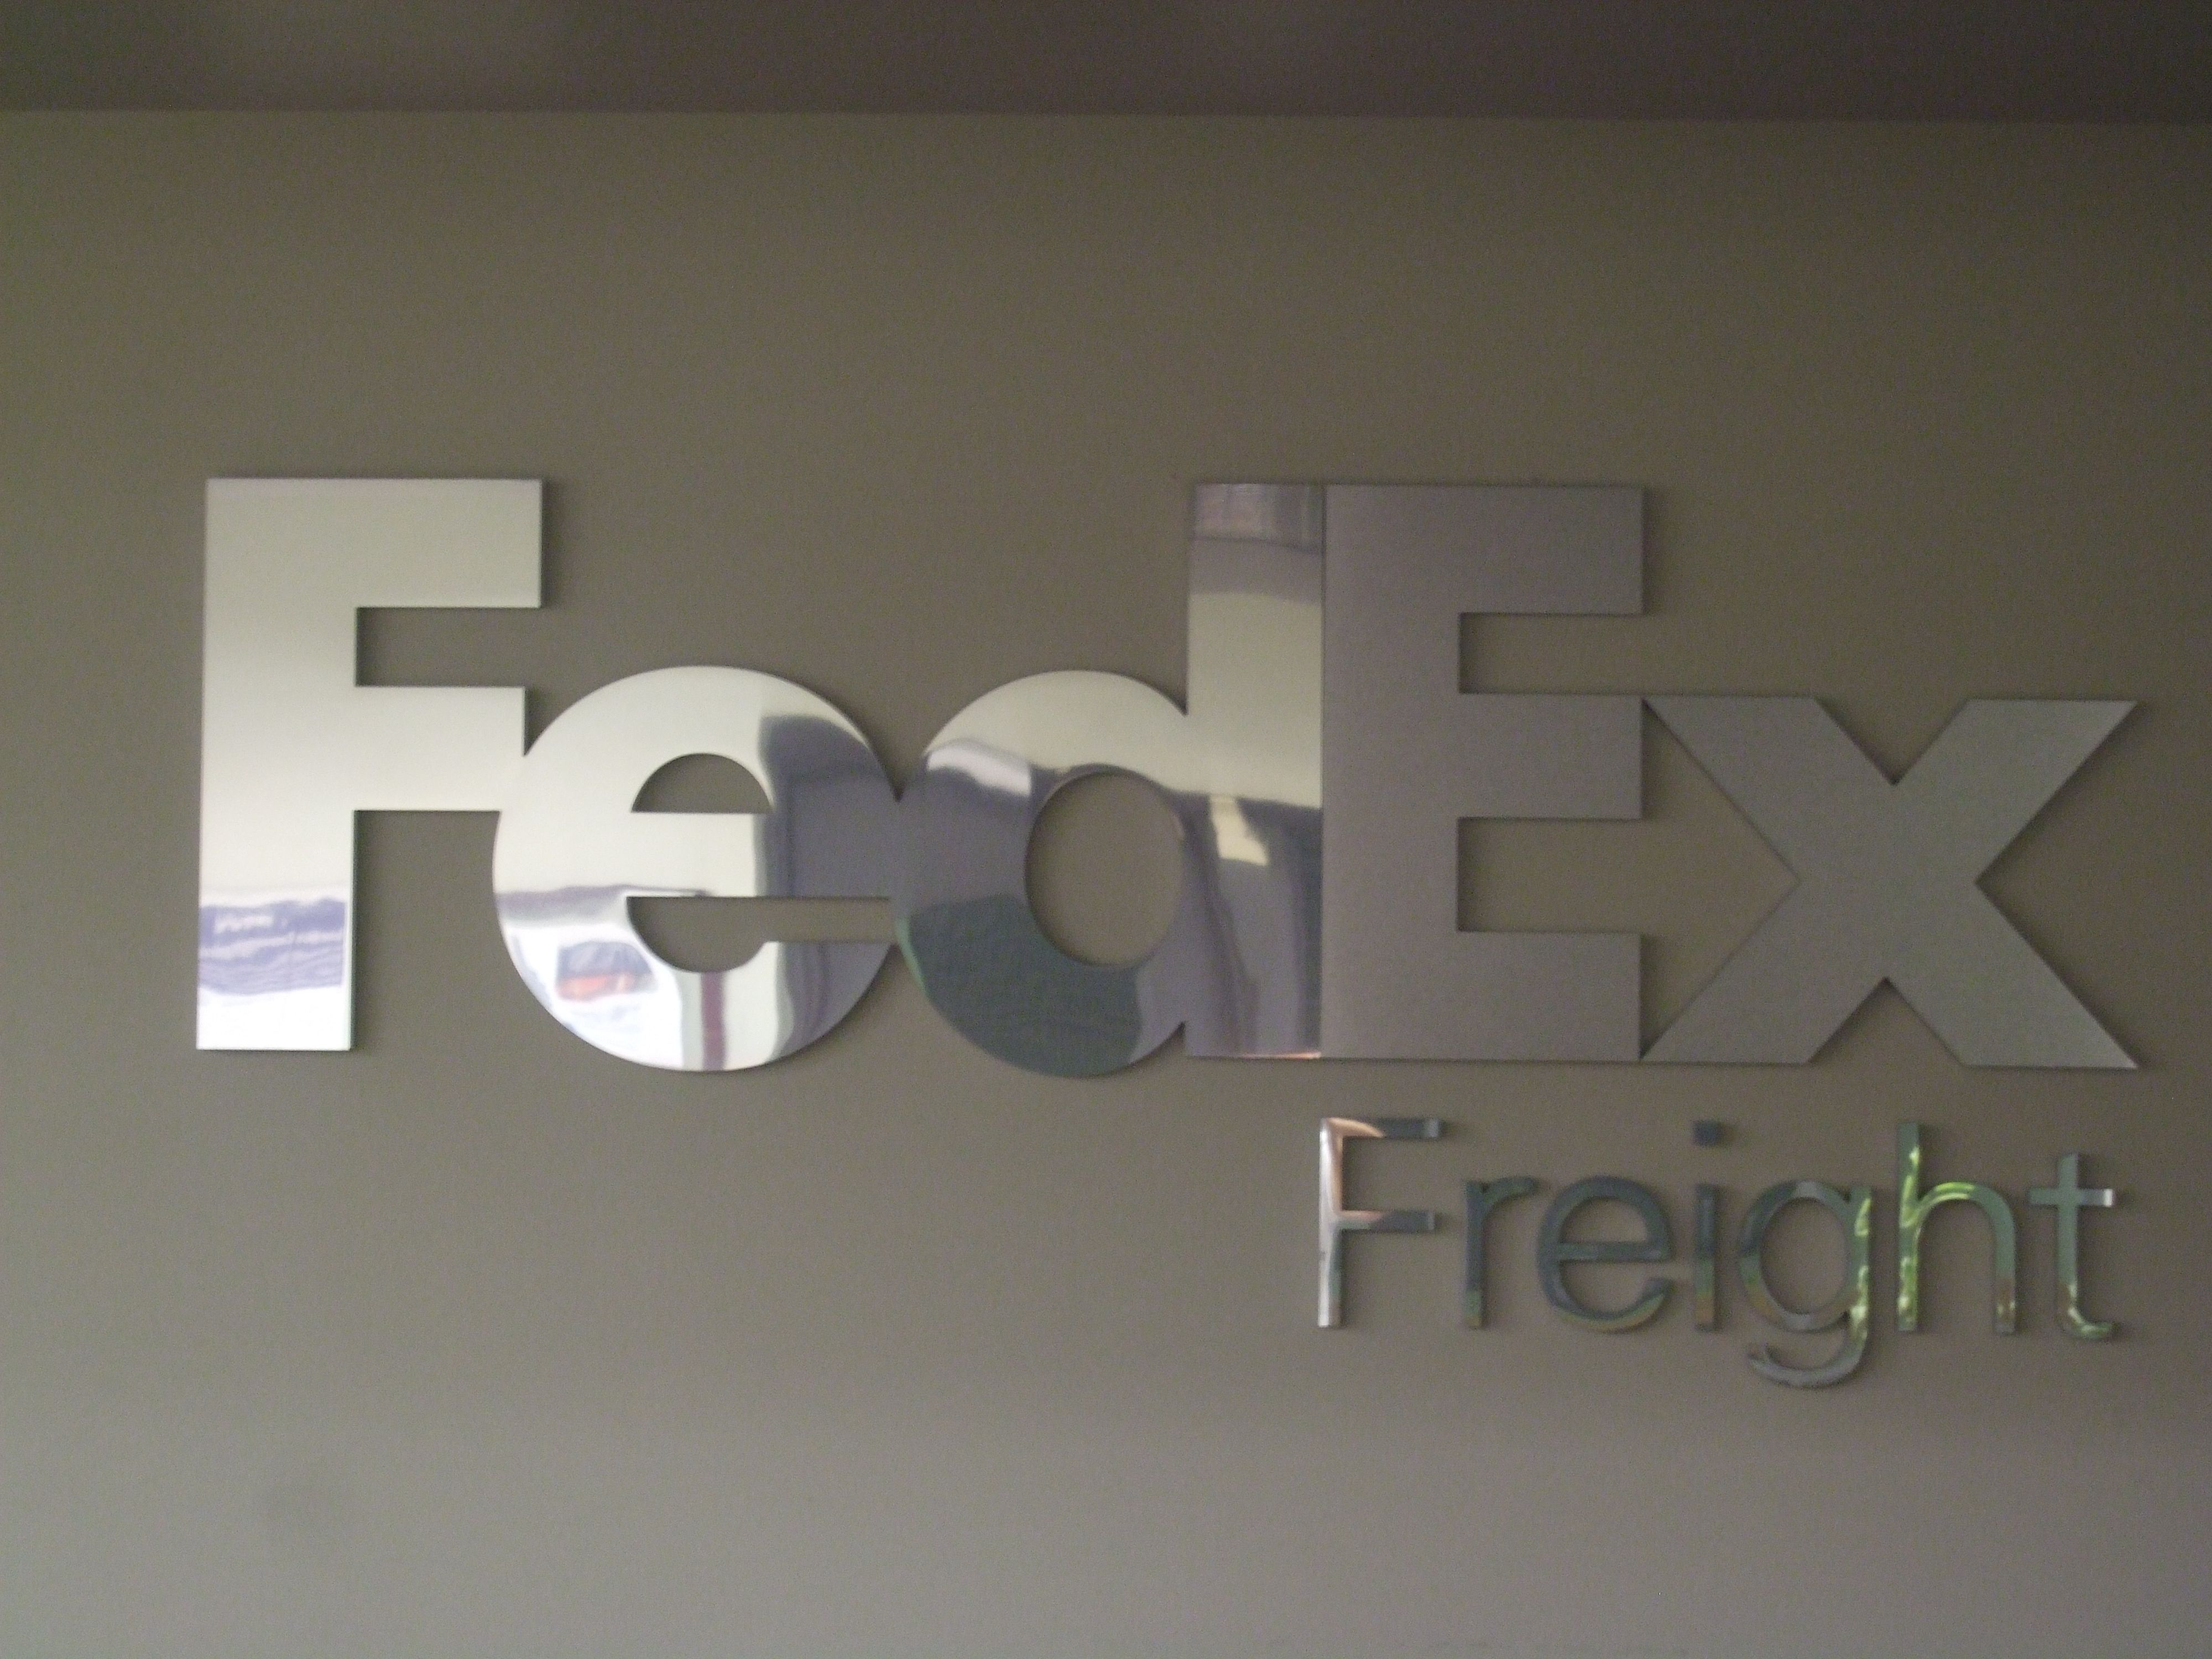 FedEx Freight logo at Wilson Avenue Home decor decals